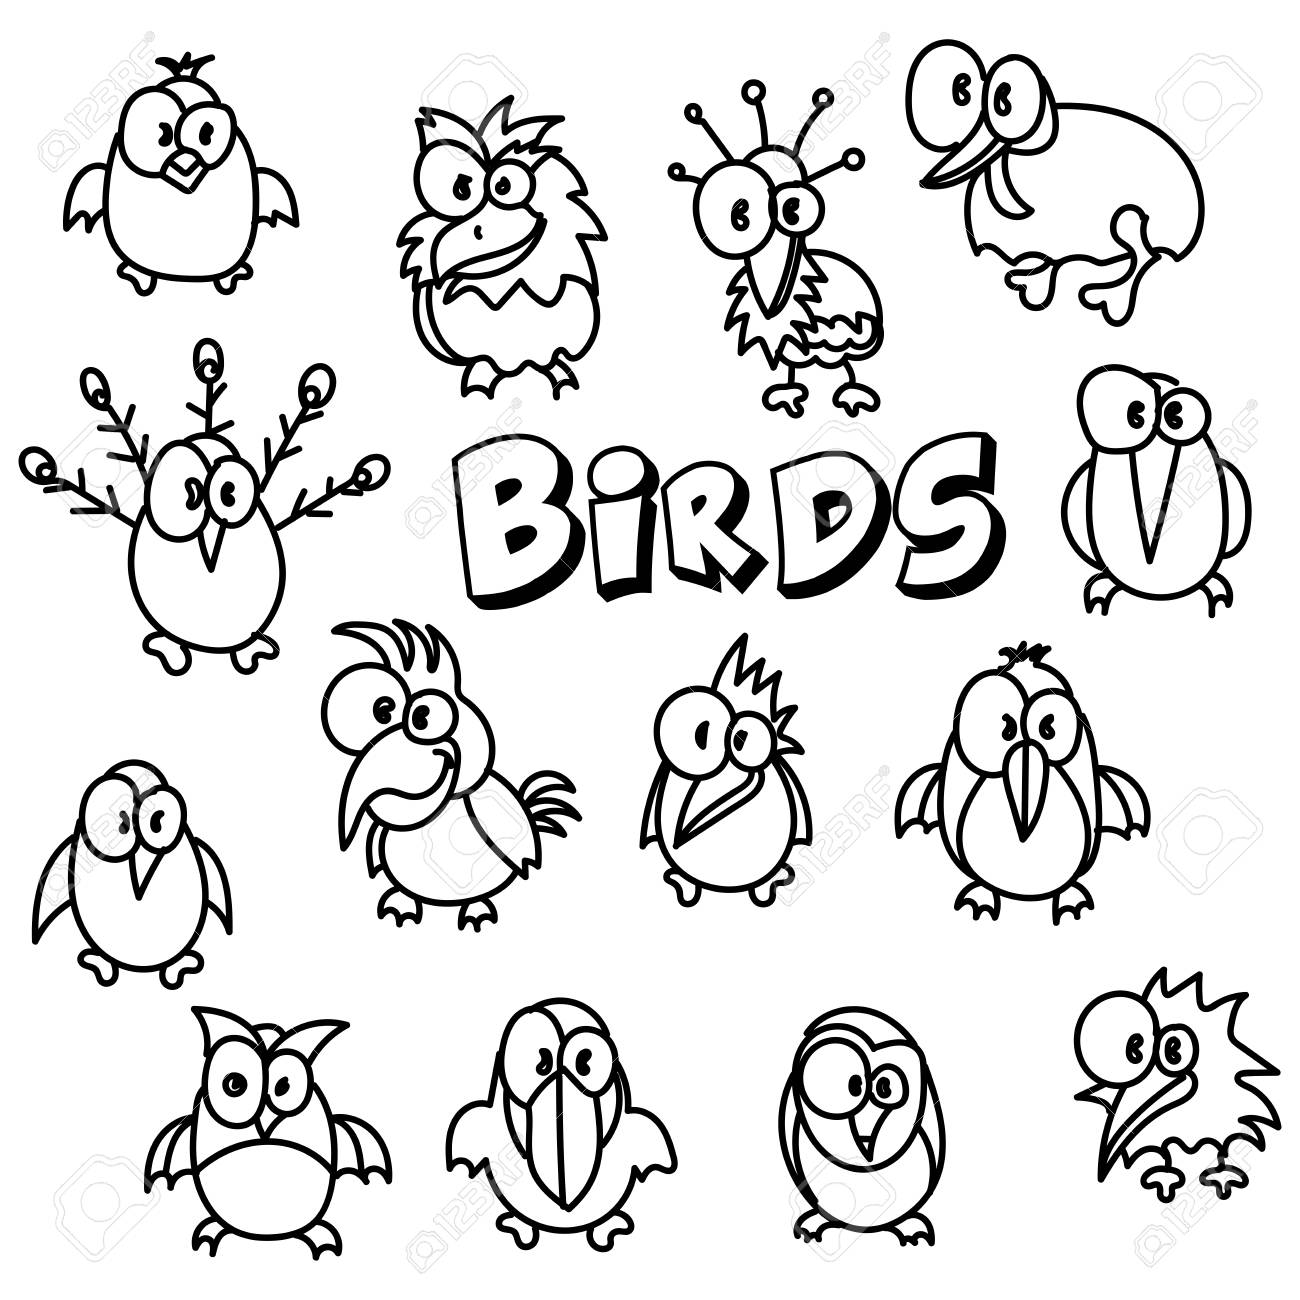 Vector Hand Drawing Cartoon Collection With Cute Doodle Birds Royalty Free Cliparts Vectors And Stock Illustration Image 104904323